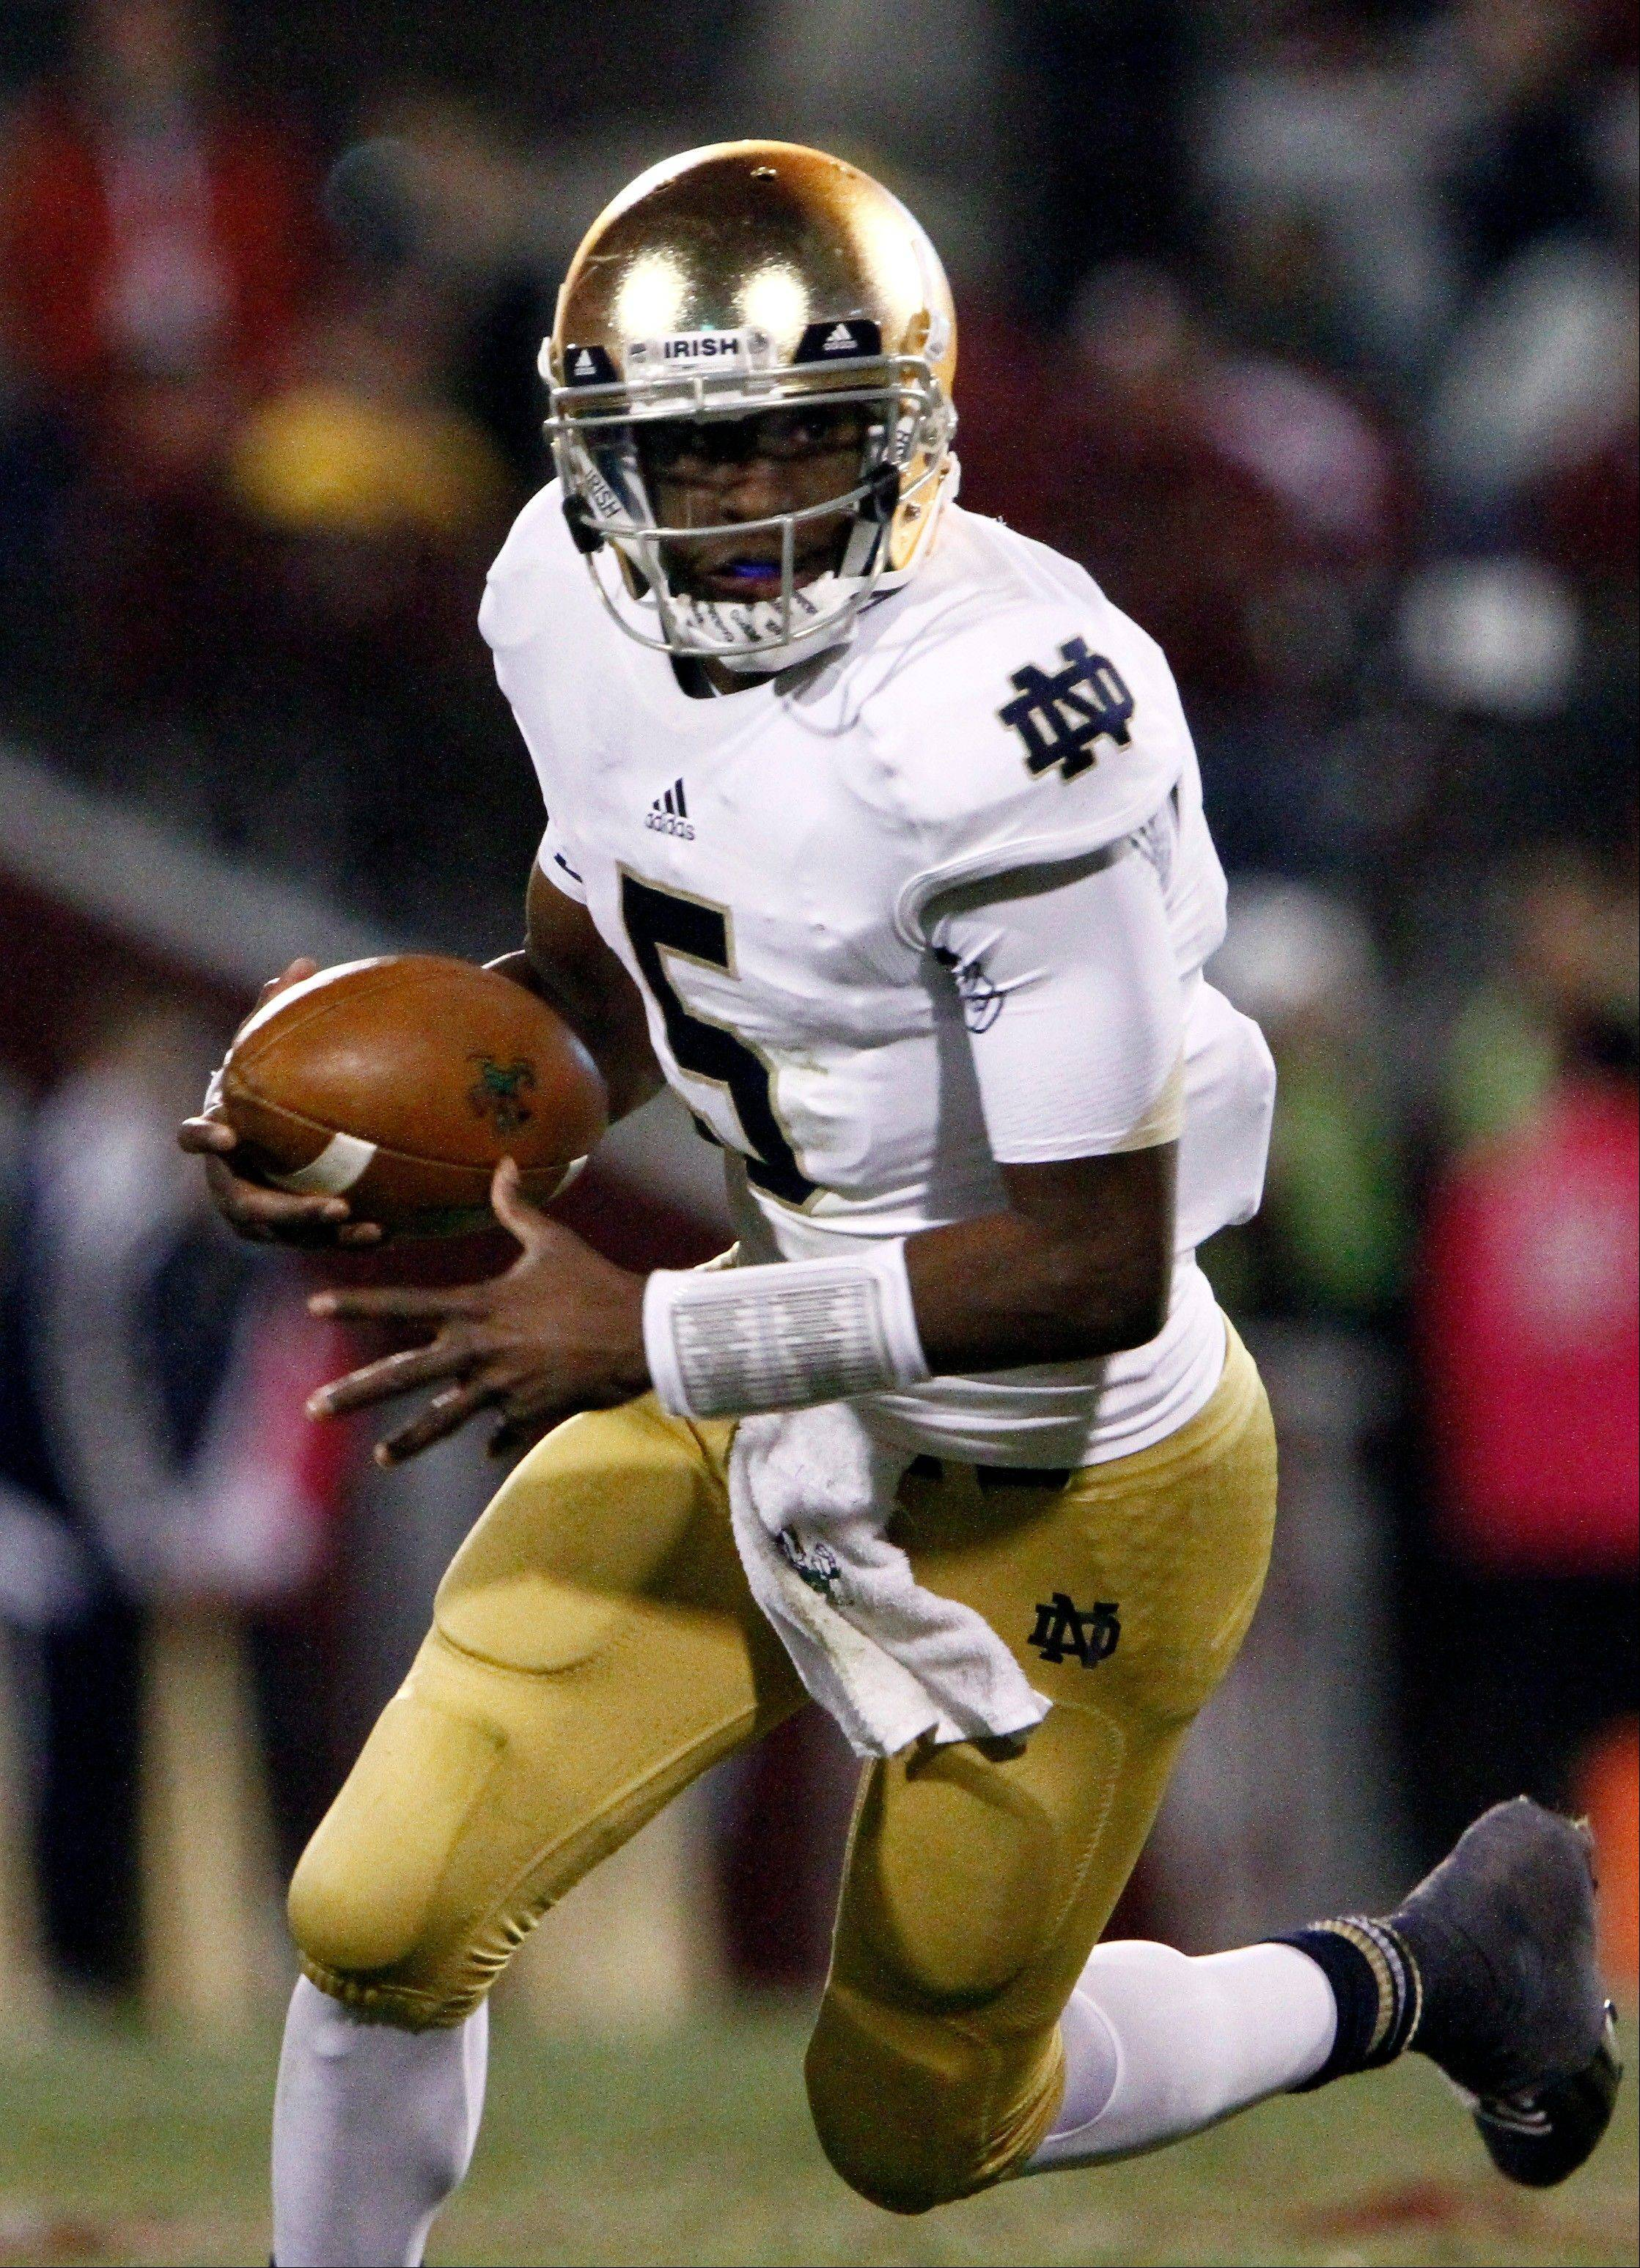 Everett Golson threw for 177 yards and plunged in for the decisive 1-yard touchdown in the fourth quarter, Manti Te'o bolstered his Heisman Trophy candidacy with a late interception and No. 5 Notre Dame beat No. 8 Oklahoma 30-13 on Saturday night to remain undefeated.